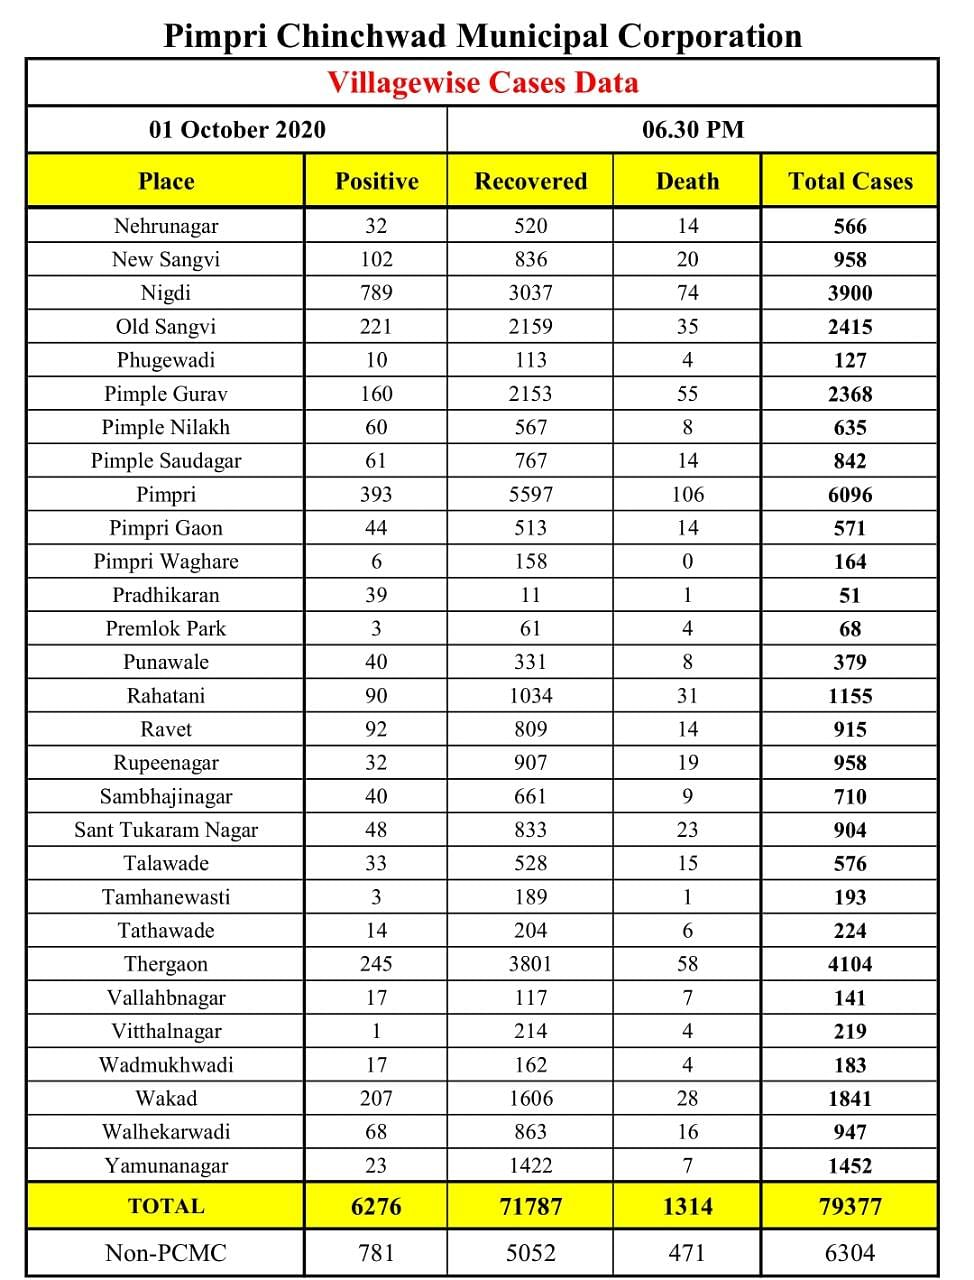 Coronavirus in Pimpri Chinchwad: Area-wise list of total COVID-19 cases in Pimpri, Wakad, Chinchwad as of Oct 1 as released by PCMC